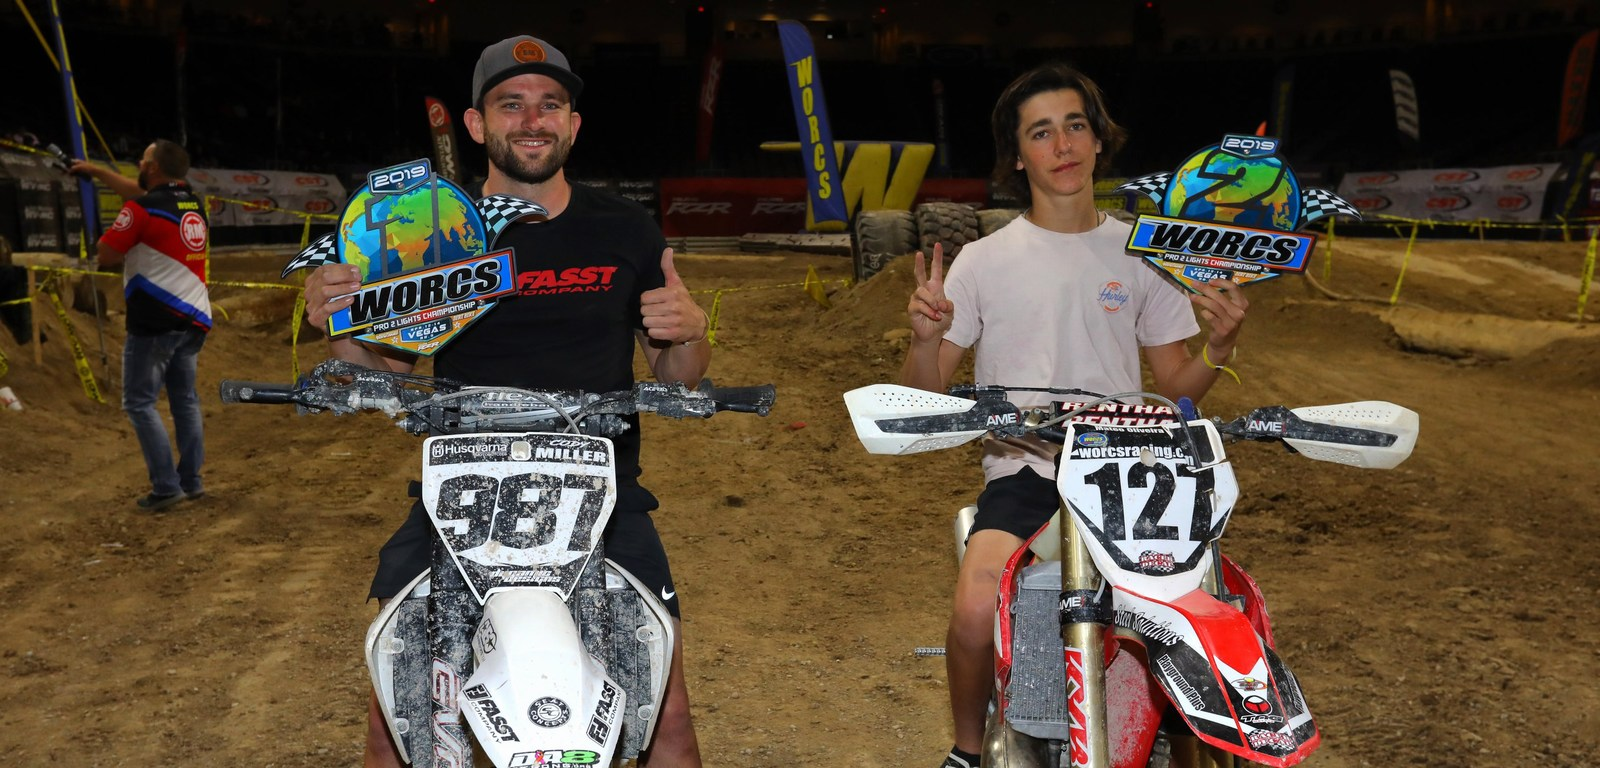 2019-05-podium-pro2-lights-bike-worcs-racing